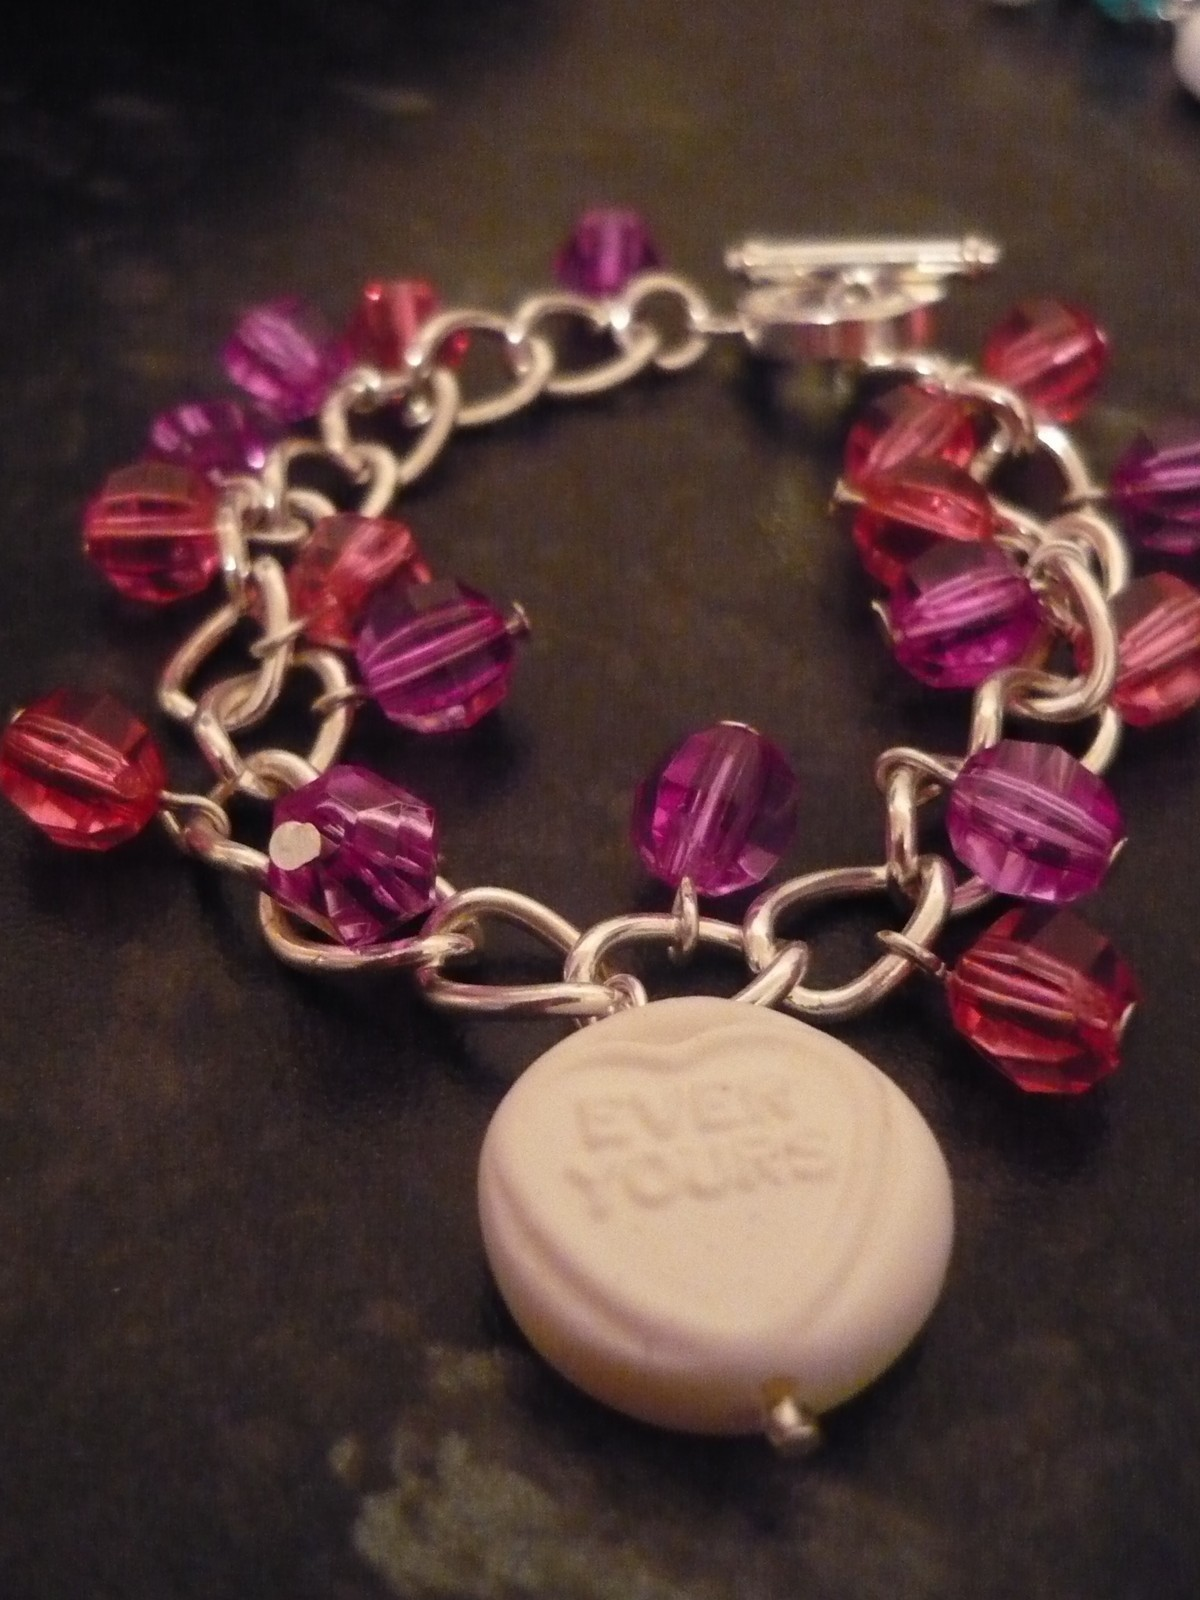 Love Heart Charm Bracelets A Bracelet Jewelry Making